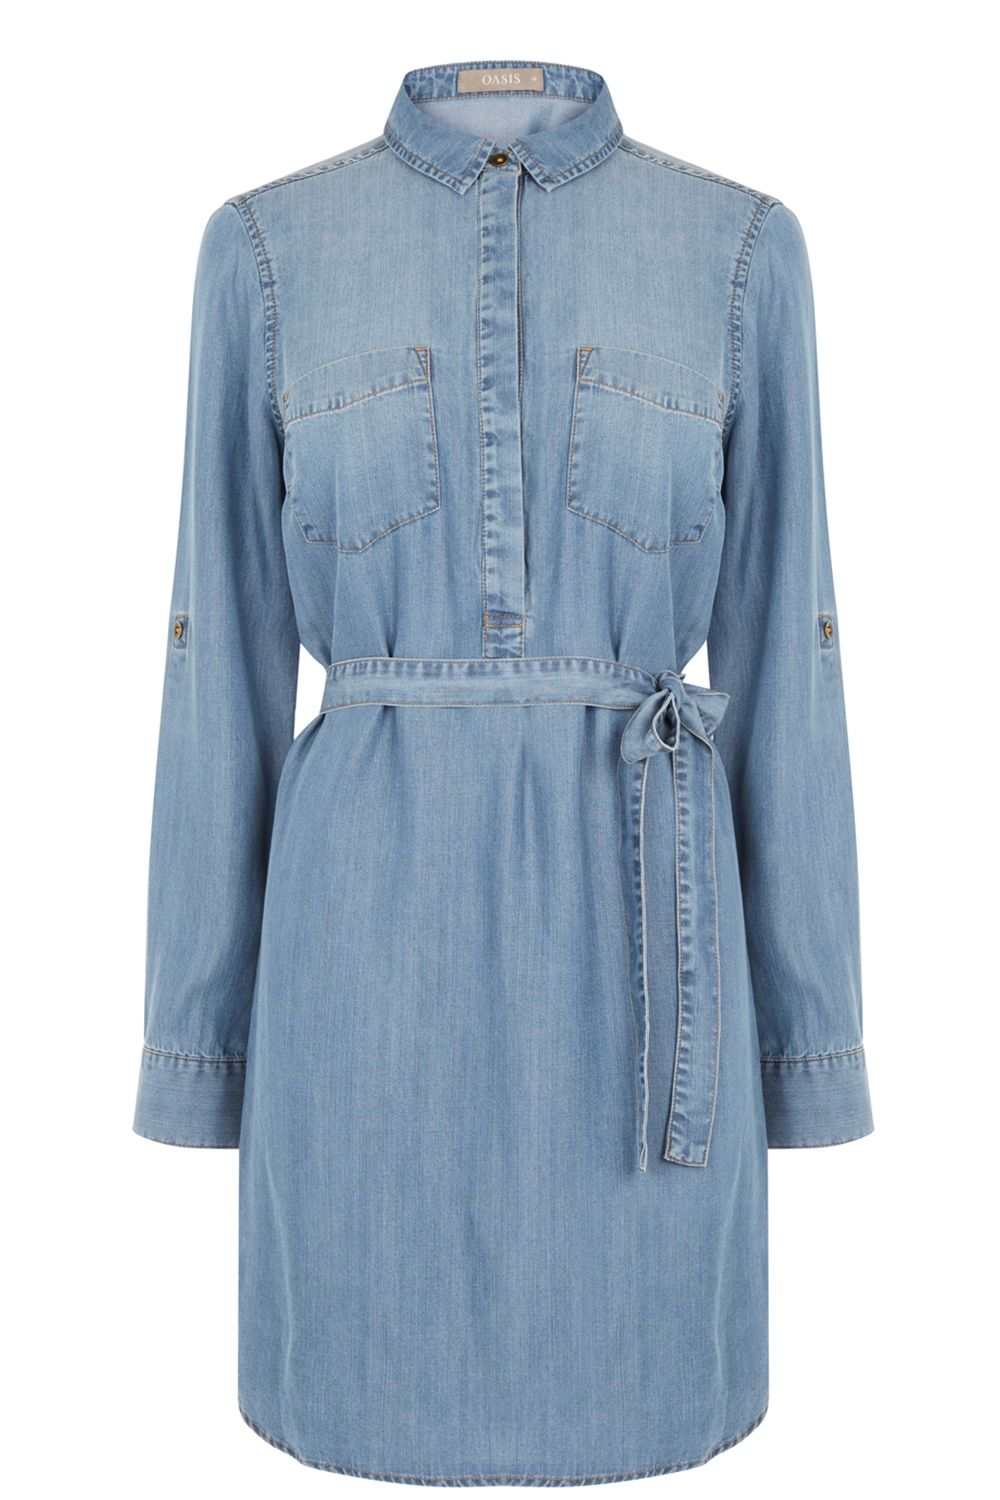 Oasis Libby Shirt Dress, Denim